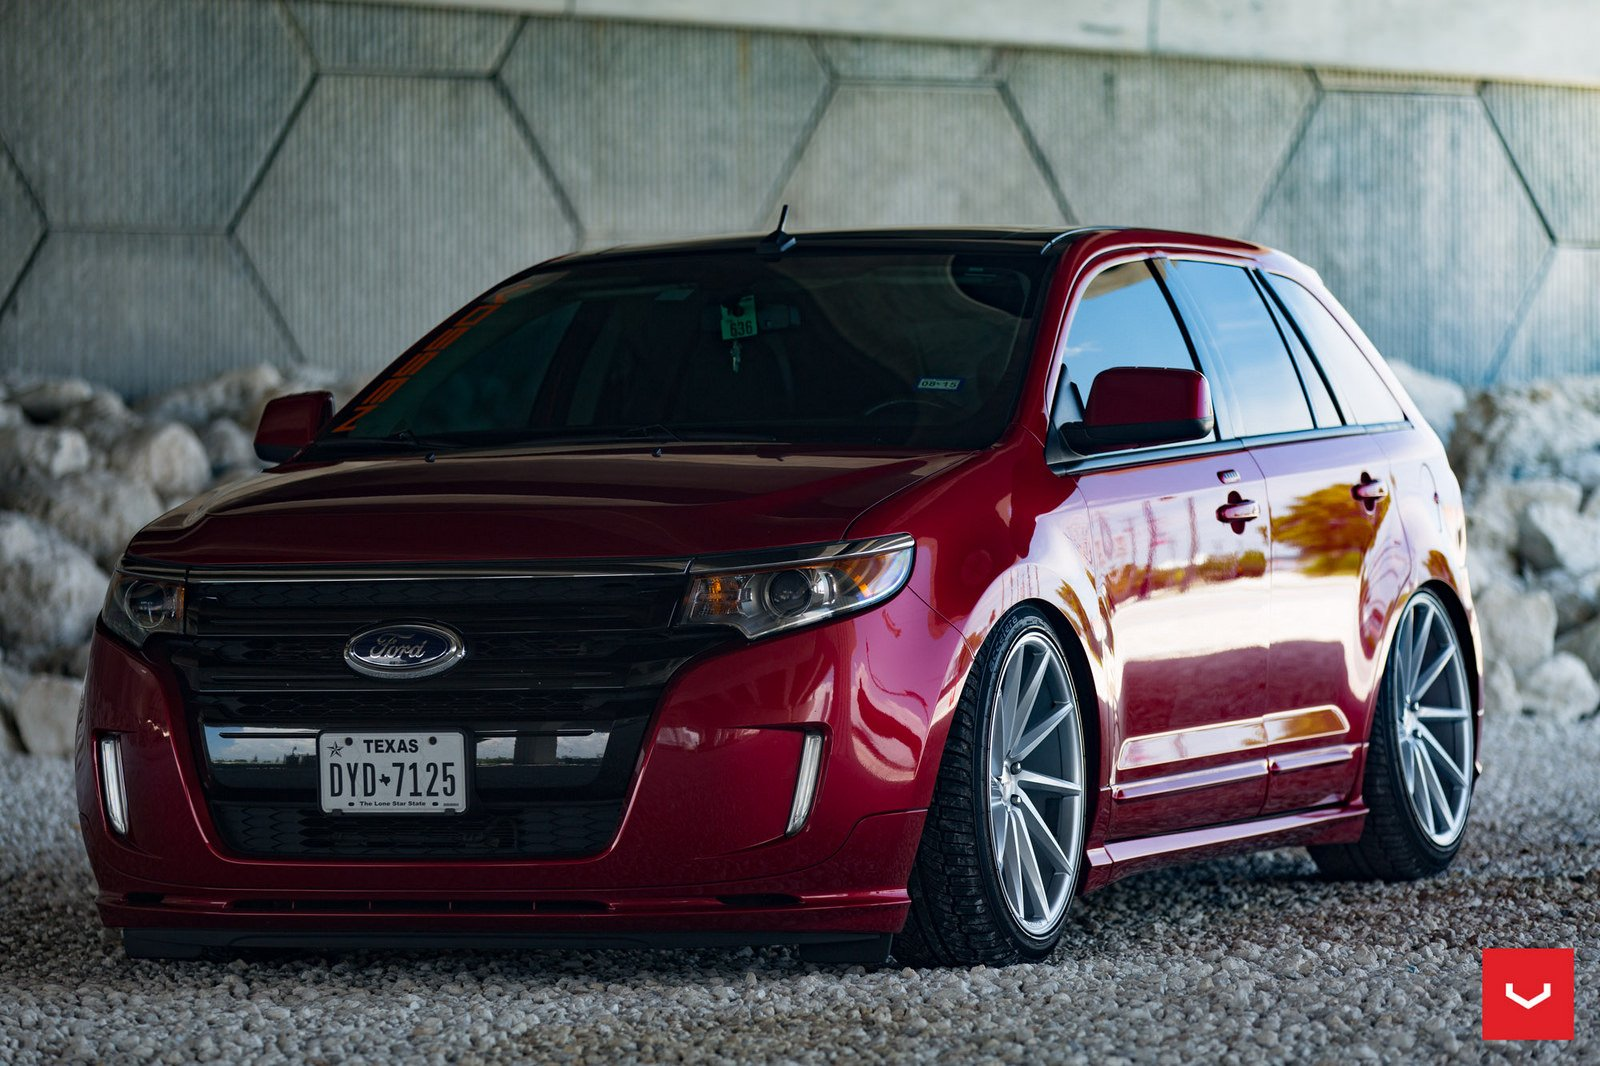 Ford Edge Wheels cars suv red wallpaper | 1600x1066 | 808646 ...